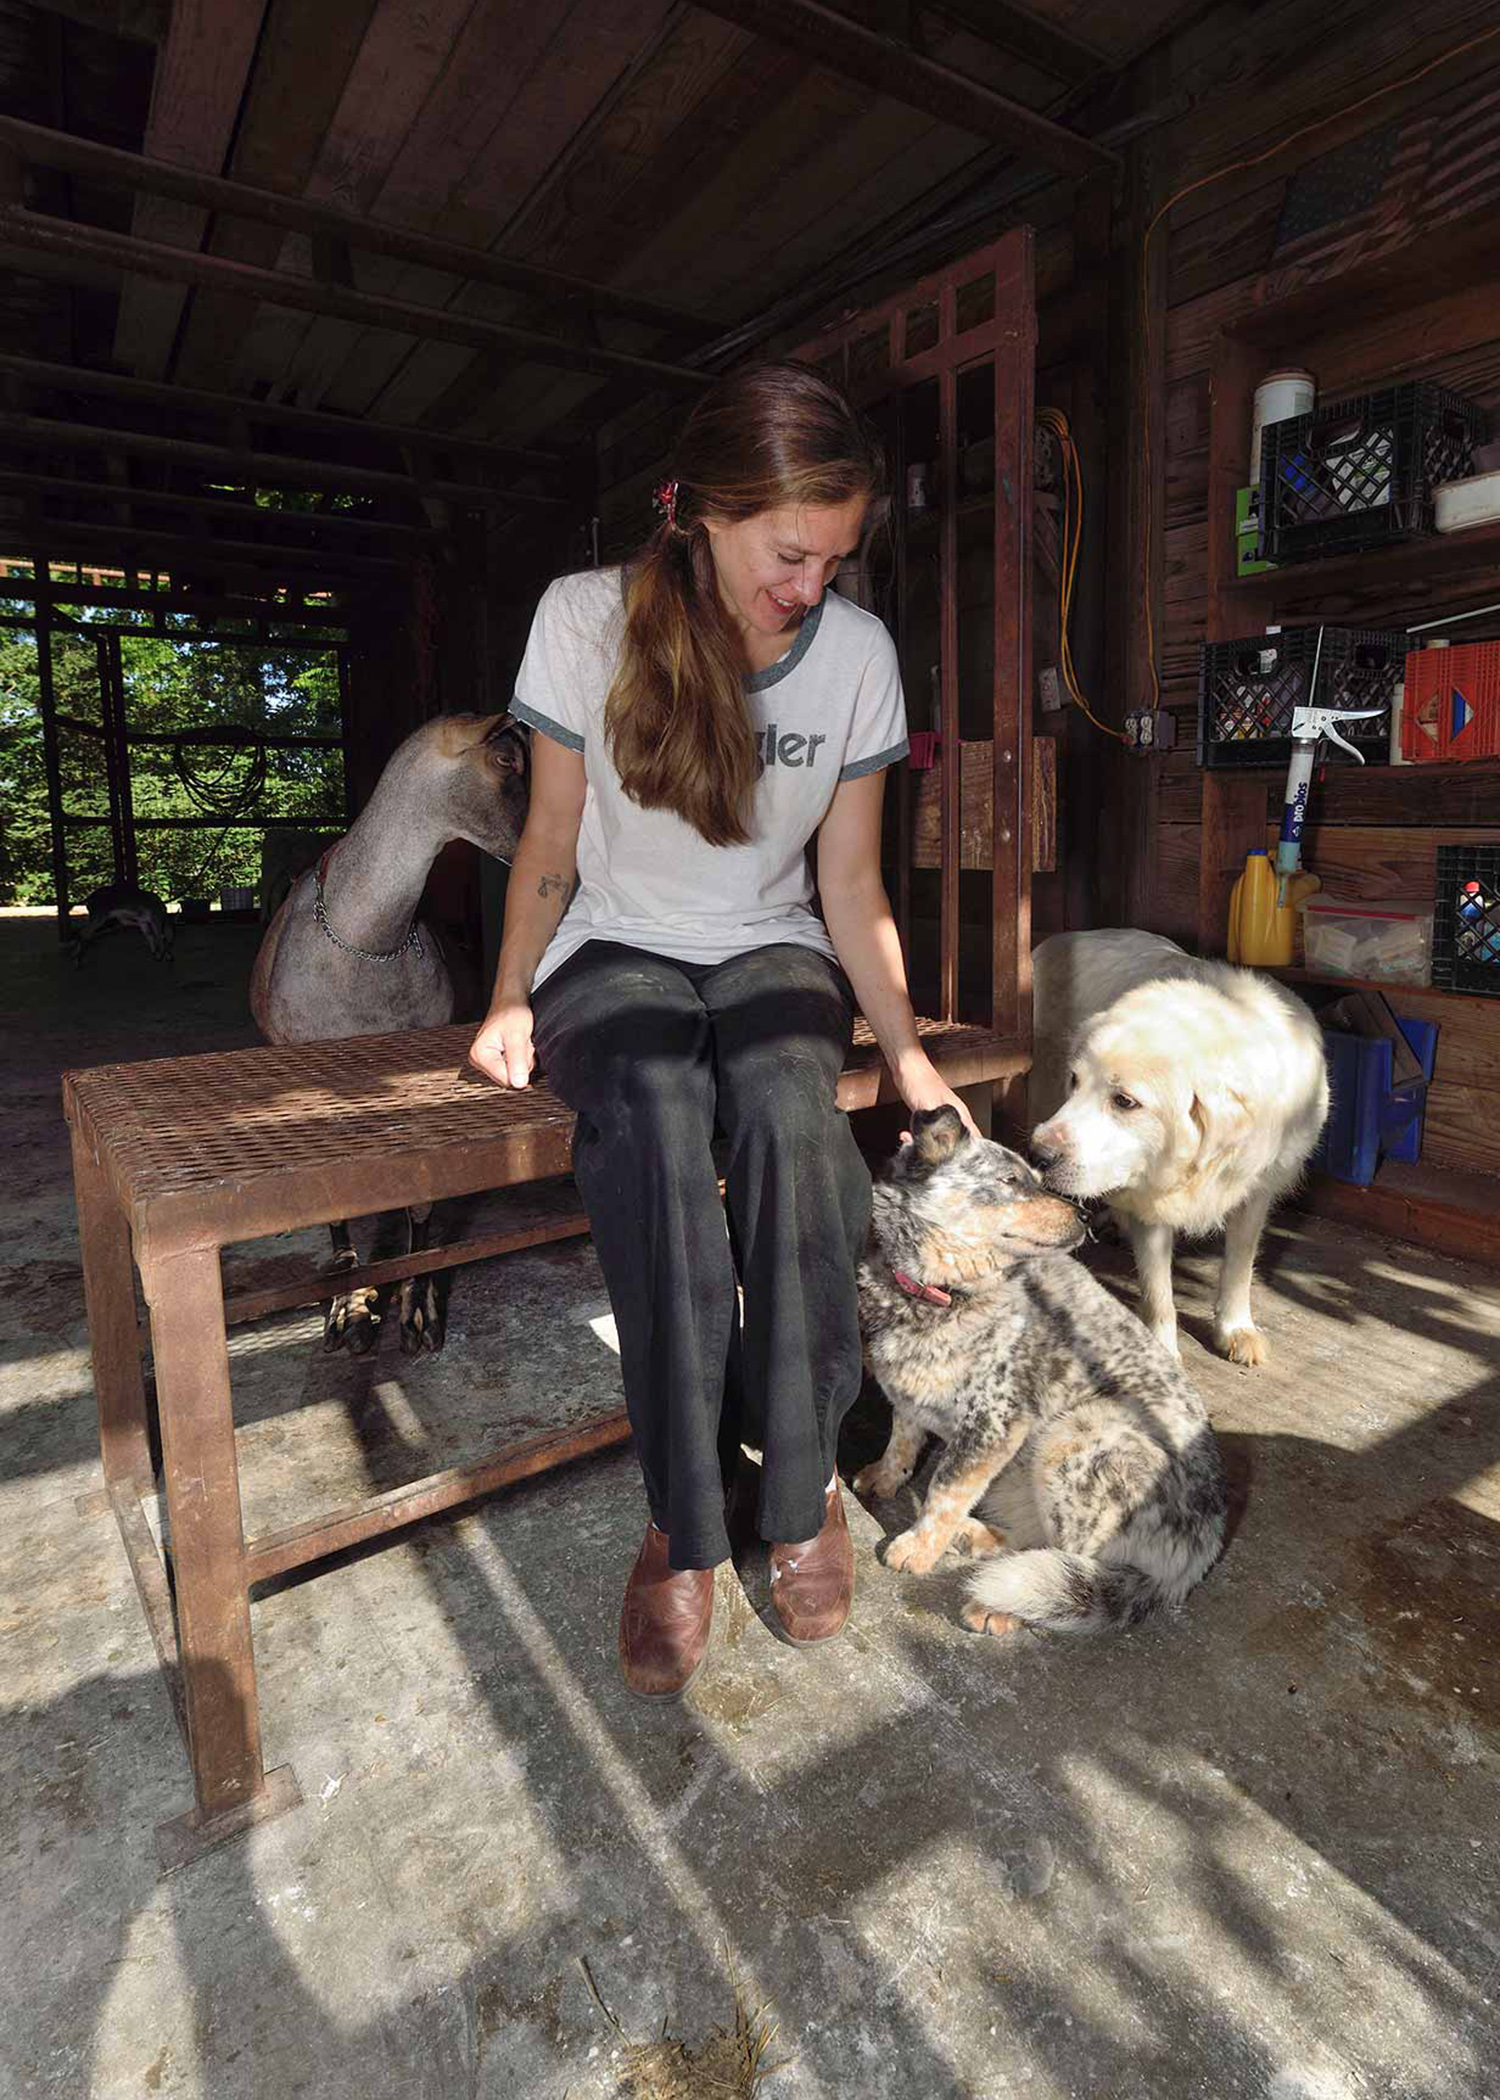 A woman with a white shirt, black pants, and brown shoes sits on a brown, metal bench inside a barn. On the right, there are two dogs. A light dog with black and brown spots sits next to the woman, white a white dog stands next to the dog sitting down. Behind the woman is a white and brown goat.